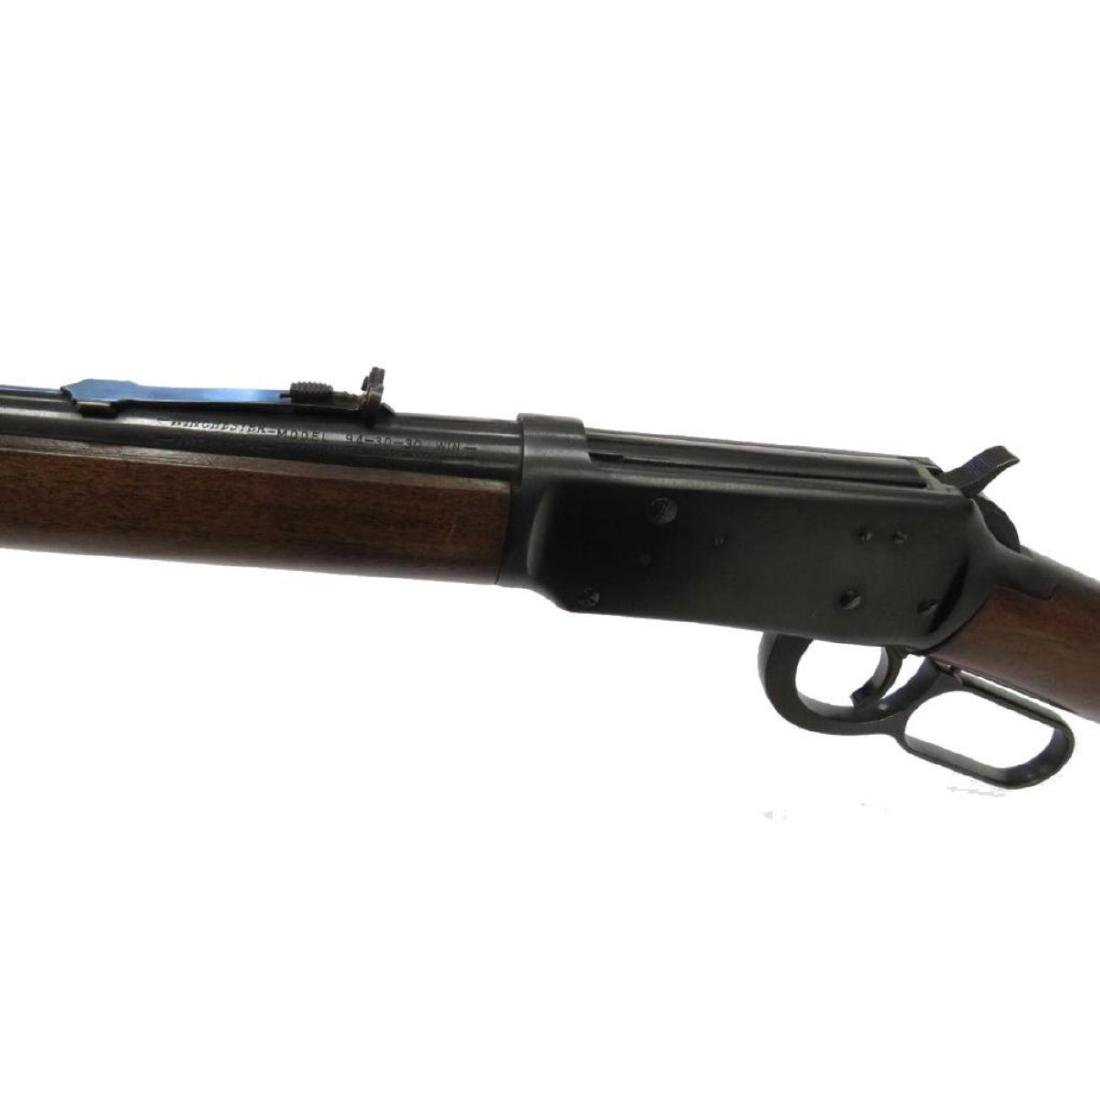 **Ncs Check** Winchester Model 94, 30-30 Win Lever - 2